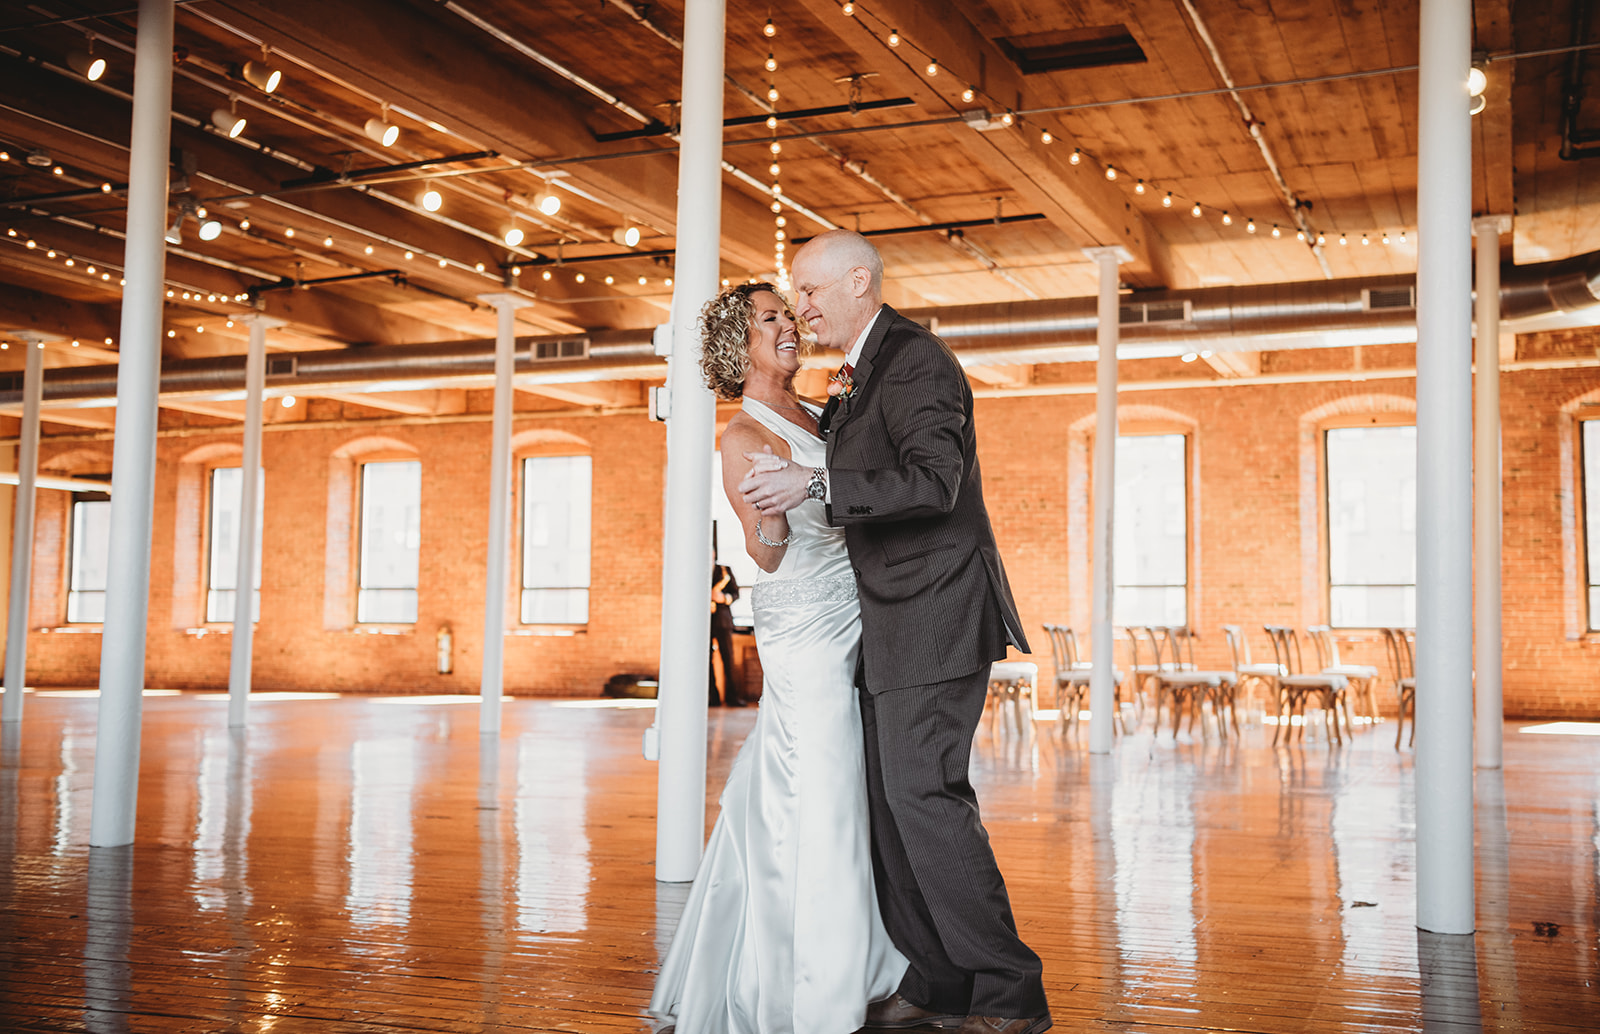 Lisa and Peter dancing at wedding (Oh Hello Alzheimer's/Facebook)